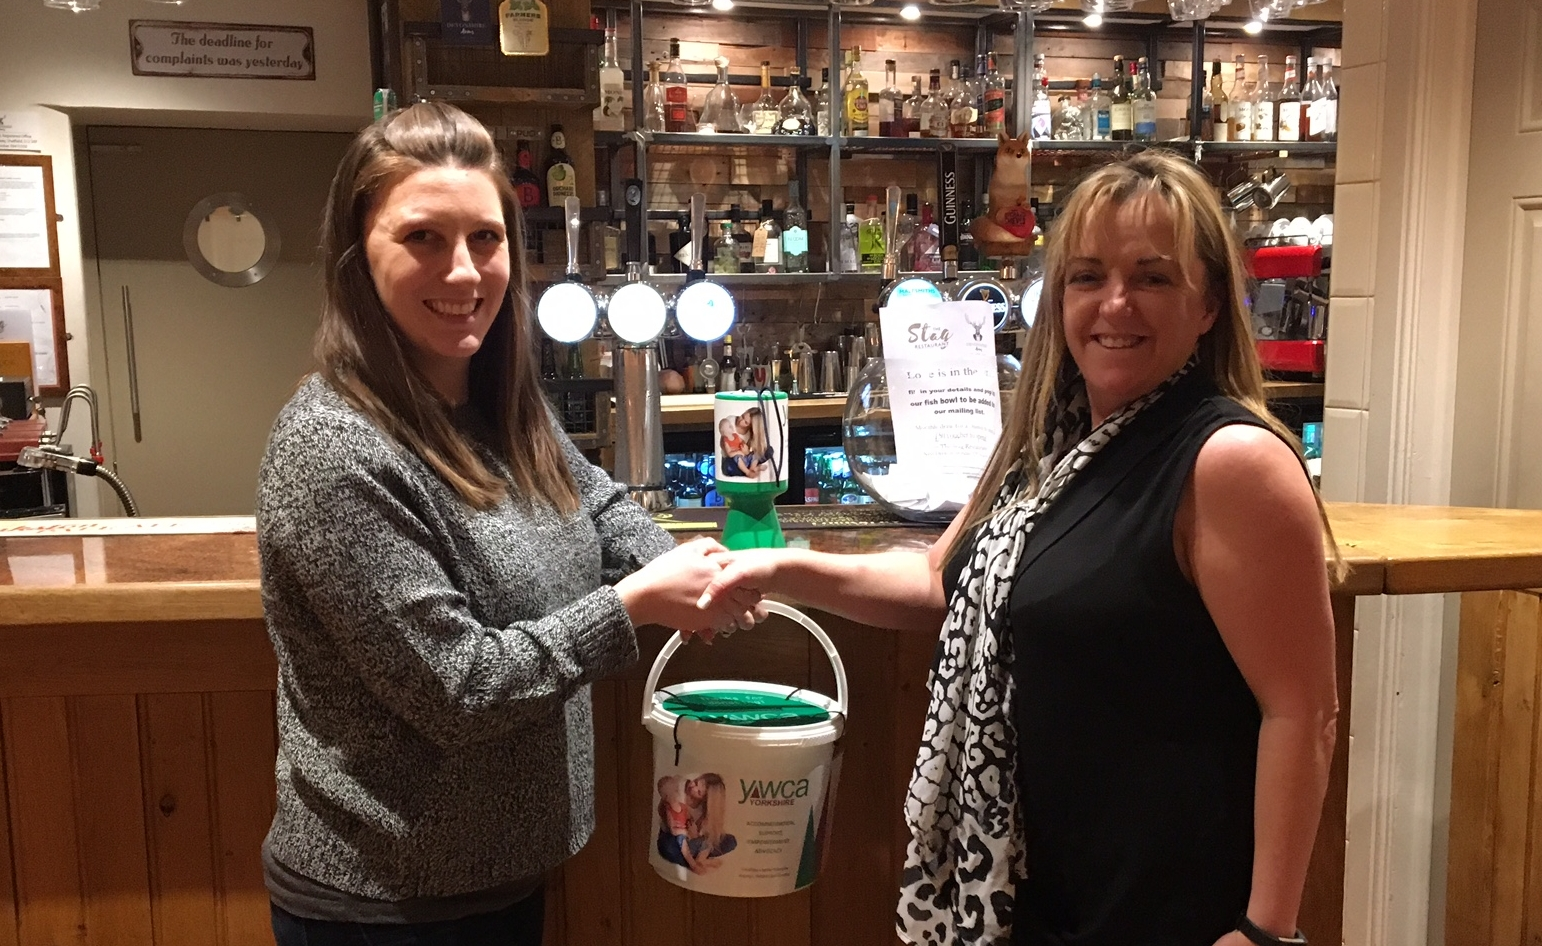 They raised over £1,400 in one night - As part of our new partnership with the excellent pub and restaurant, we say thank you for all the money they raised on one evening.